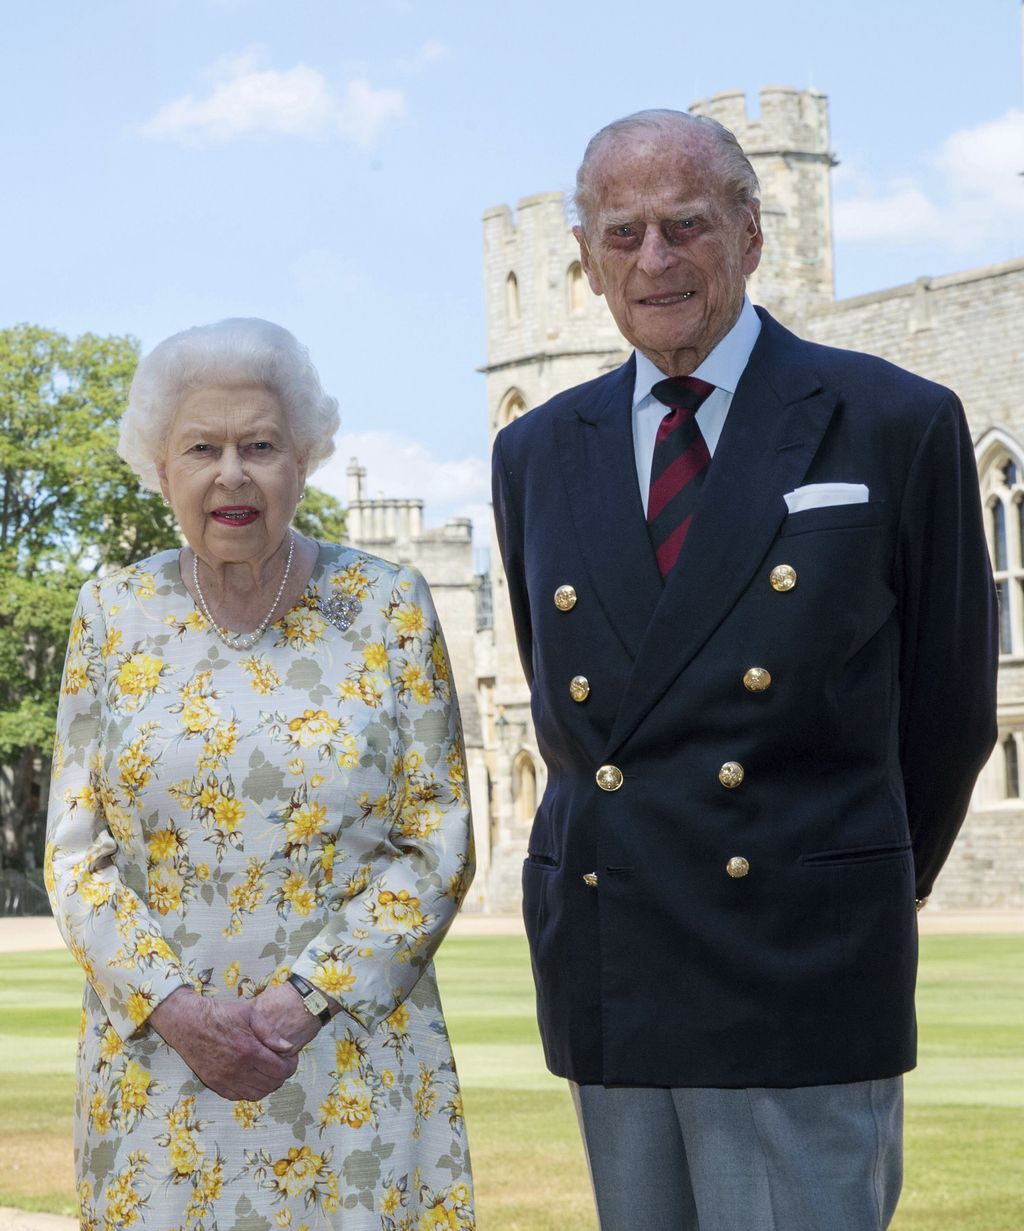 Britain's Queen Elizabeth II and Prince Philip the Duke of Edinburgh pose for a photo June 1, 2020, in the quadrangle of Windsor Castle, in Windsor, England, ahead of his 99th birthday on Wednesday, June 10. The Queen is wearing an Angela Kelly dress with the Cullinan V diamond brooch, while Prince Philip is wearing a Household Division tie. (Steve Parsons/Pool via AP)